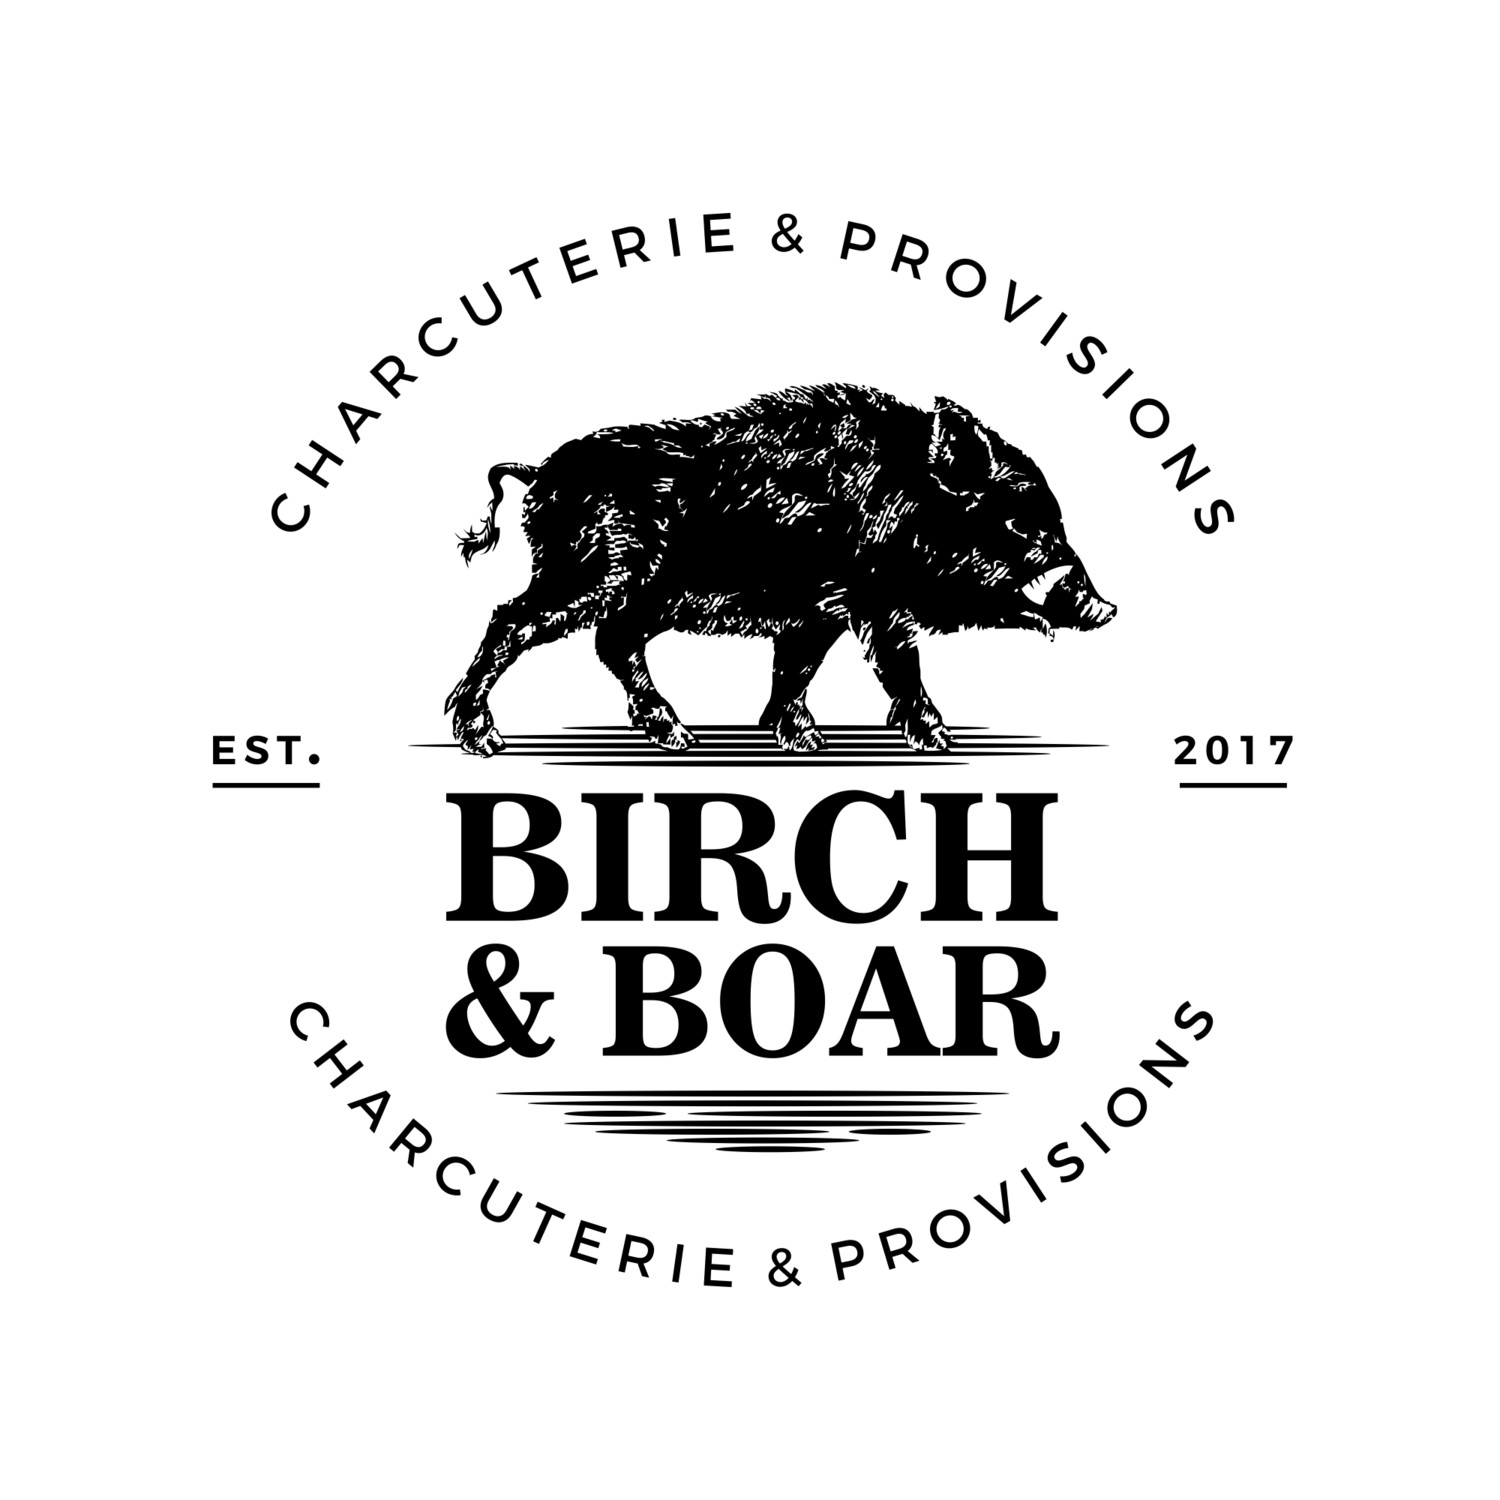 BIRCH & BOAR BUTCHERY